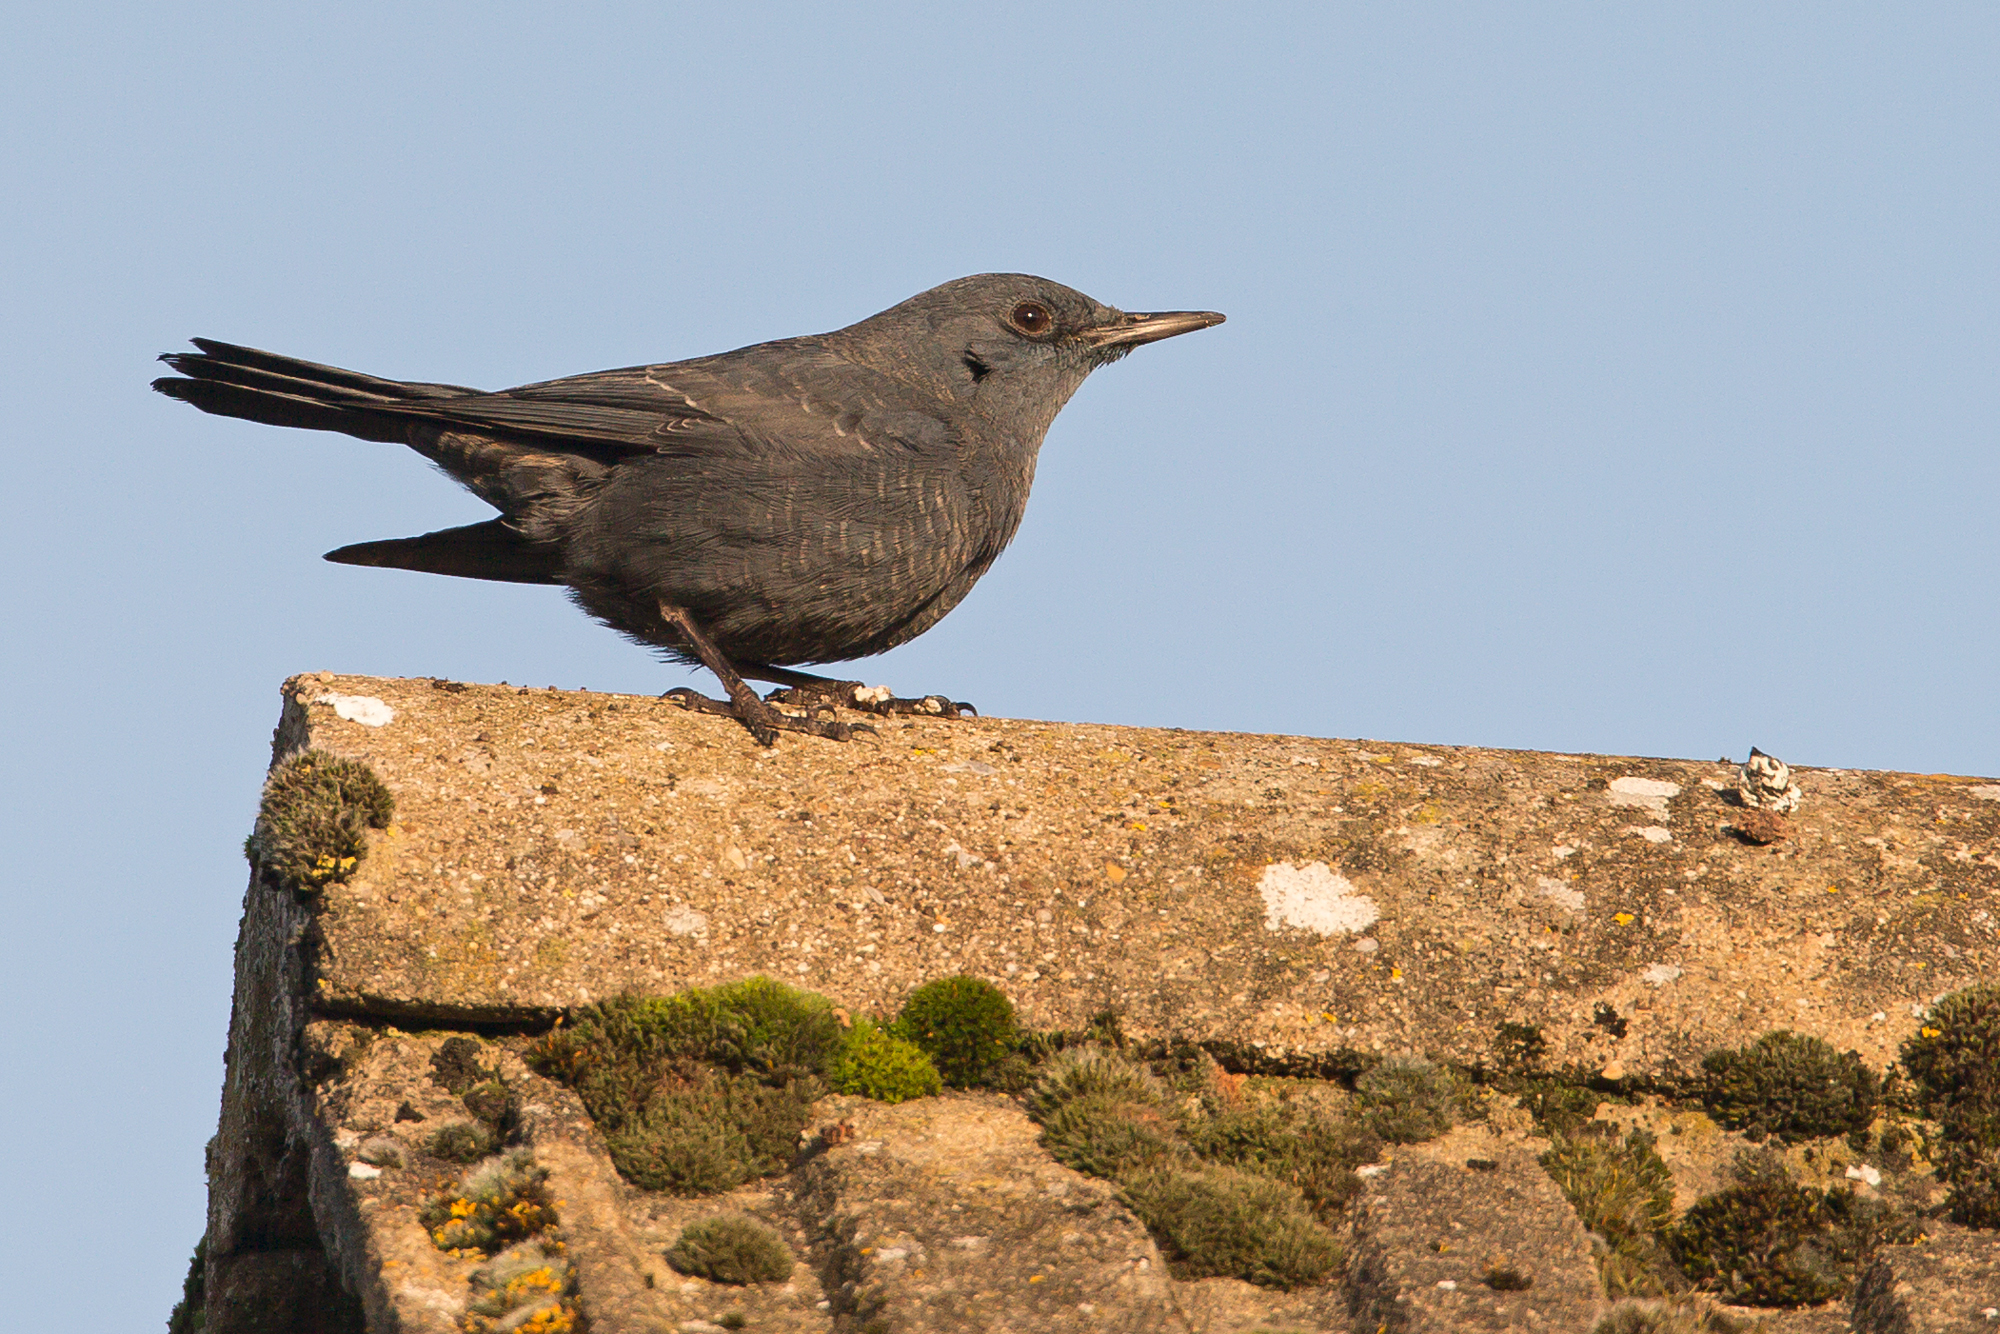 Blue Rock Thrush, Stow-on-the-Wold, 30 December 2016